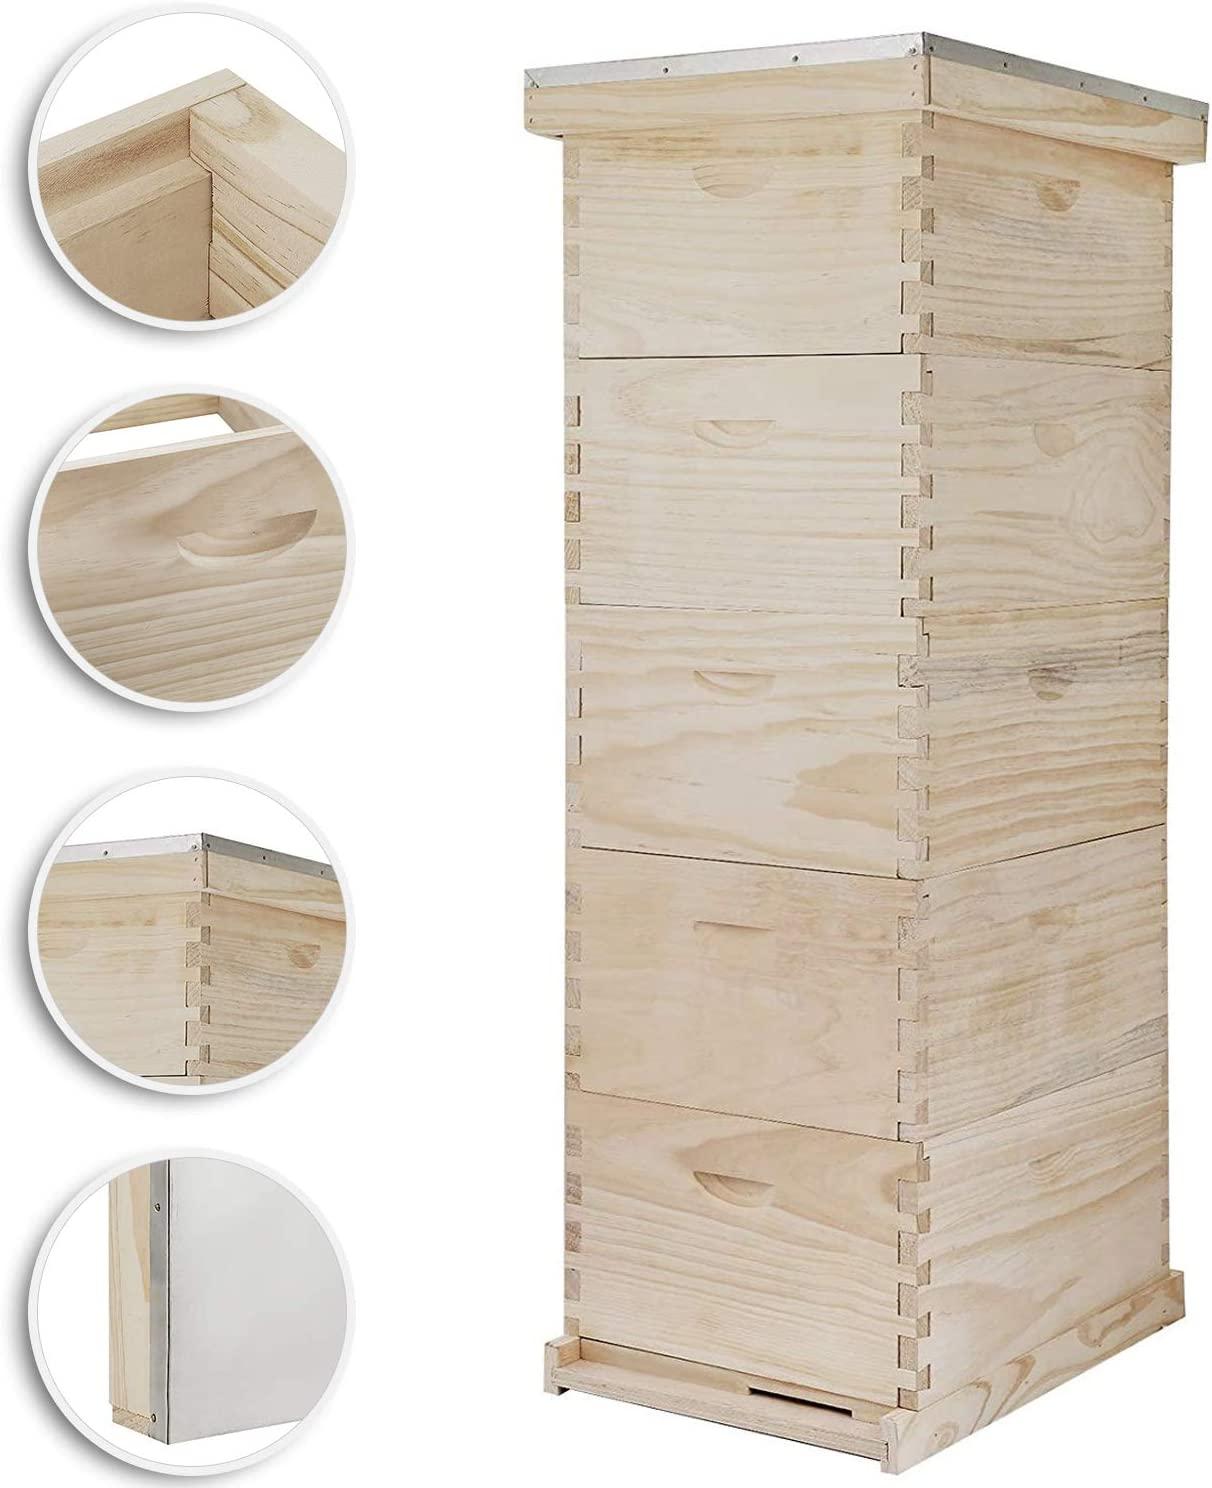 10-Frame size Beehive Frames //Bee Hive Frame// Bee House for Beekeeping 5 Boxes